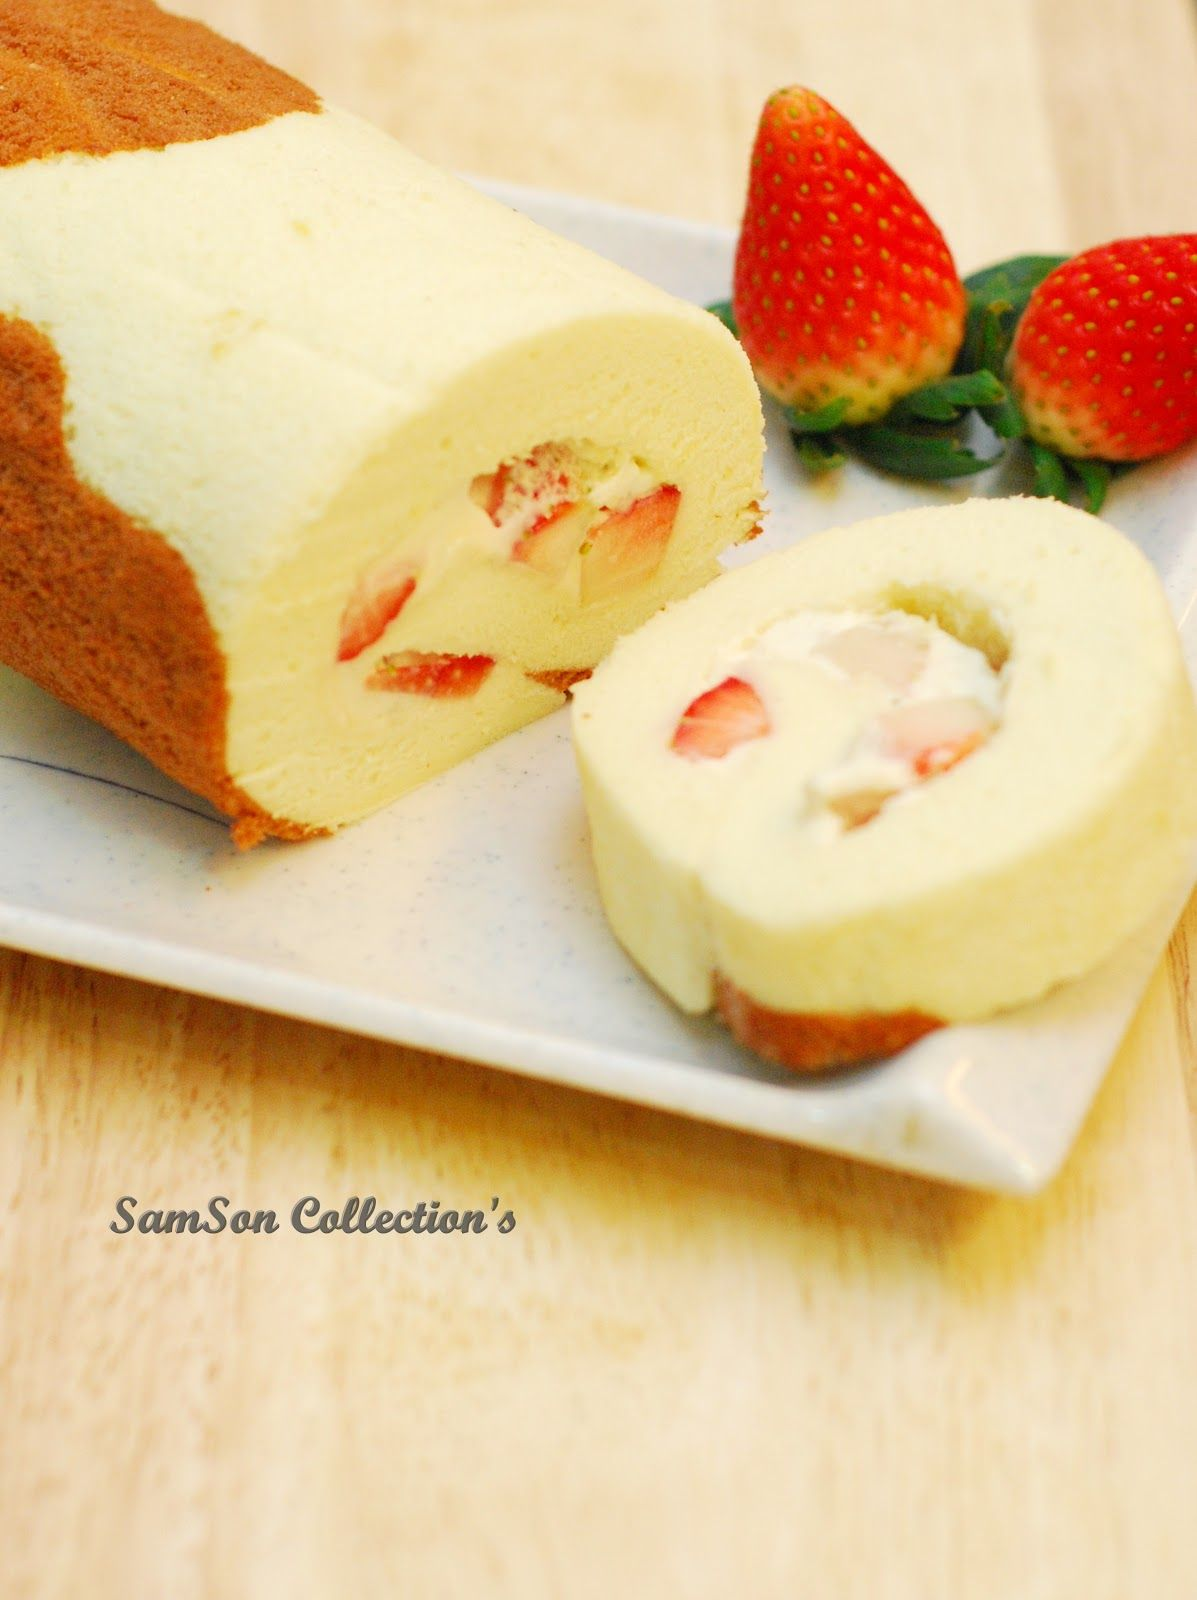 Samson Collection S Cute Japanese Roll Cake